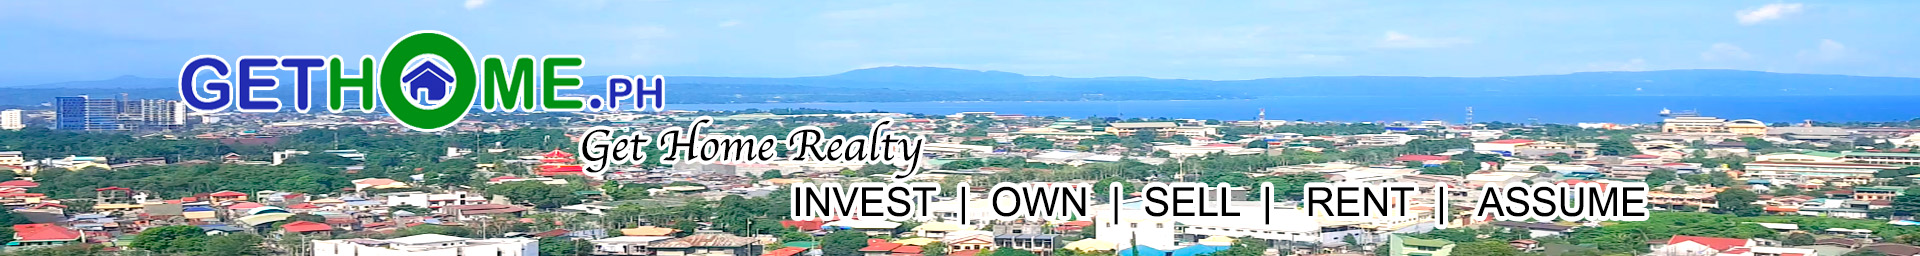 GET-HOME-PH-LOGO-HOUSE-AND-LOT-CONDO-FOR-SALE-RENT-invest-IN-DAVAO